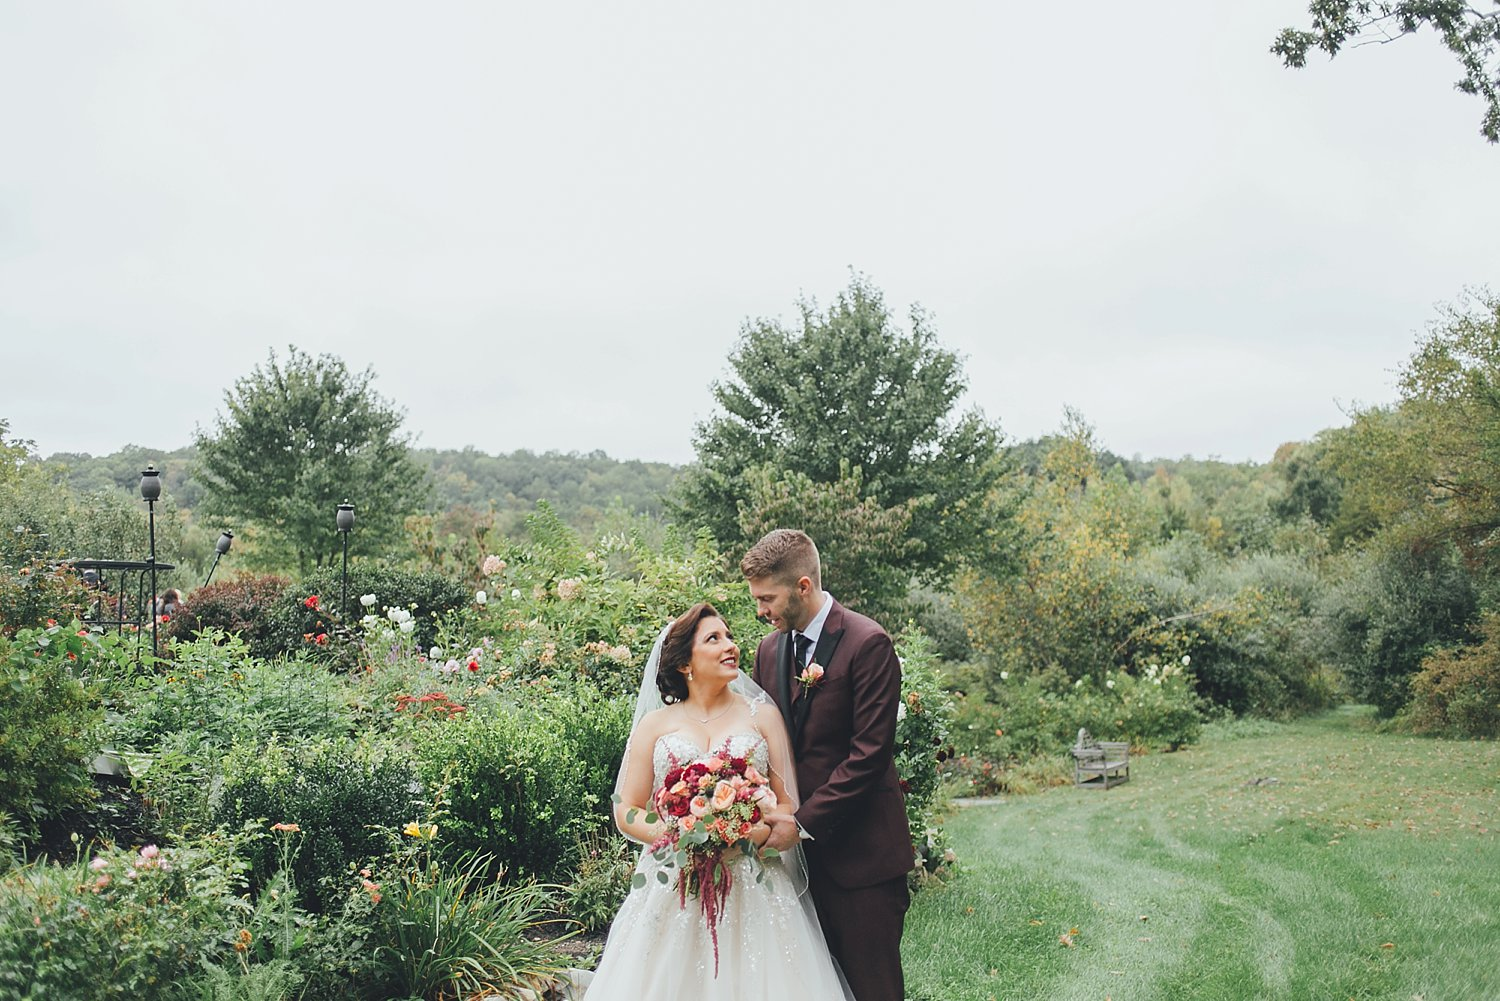 nyc-wedding-photography-nj-tri-state-cinematography-intothestory-by-moo-jae_0354.jpg